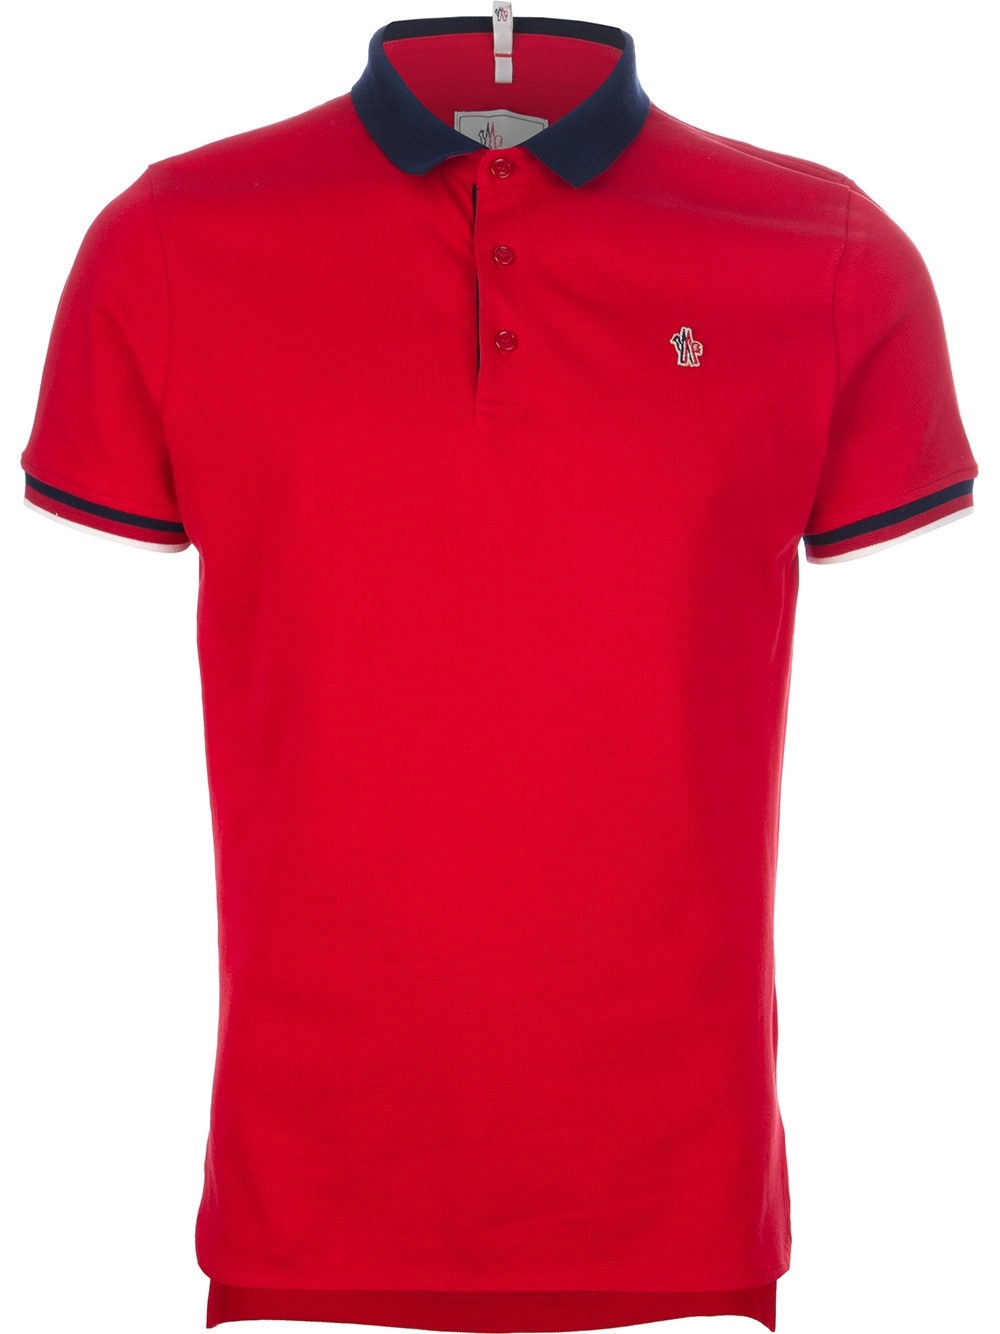 ddfbcca63 mens red polo - Ecosia